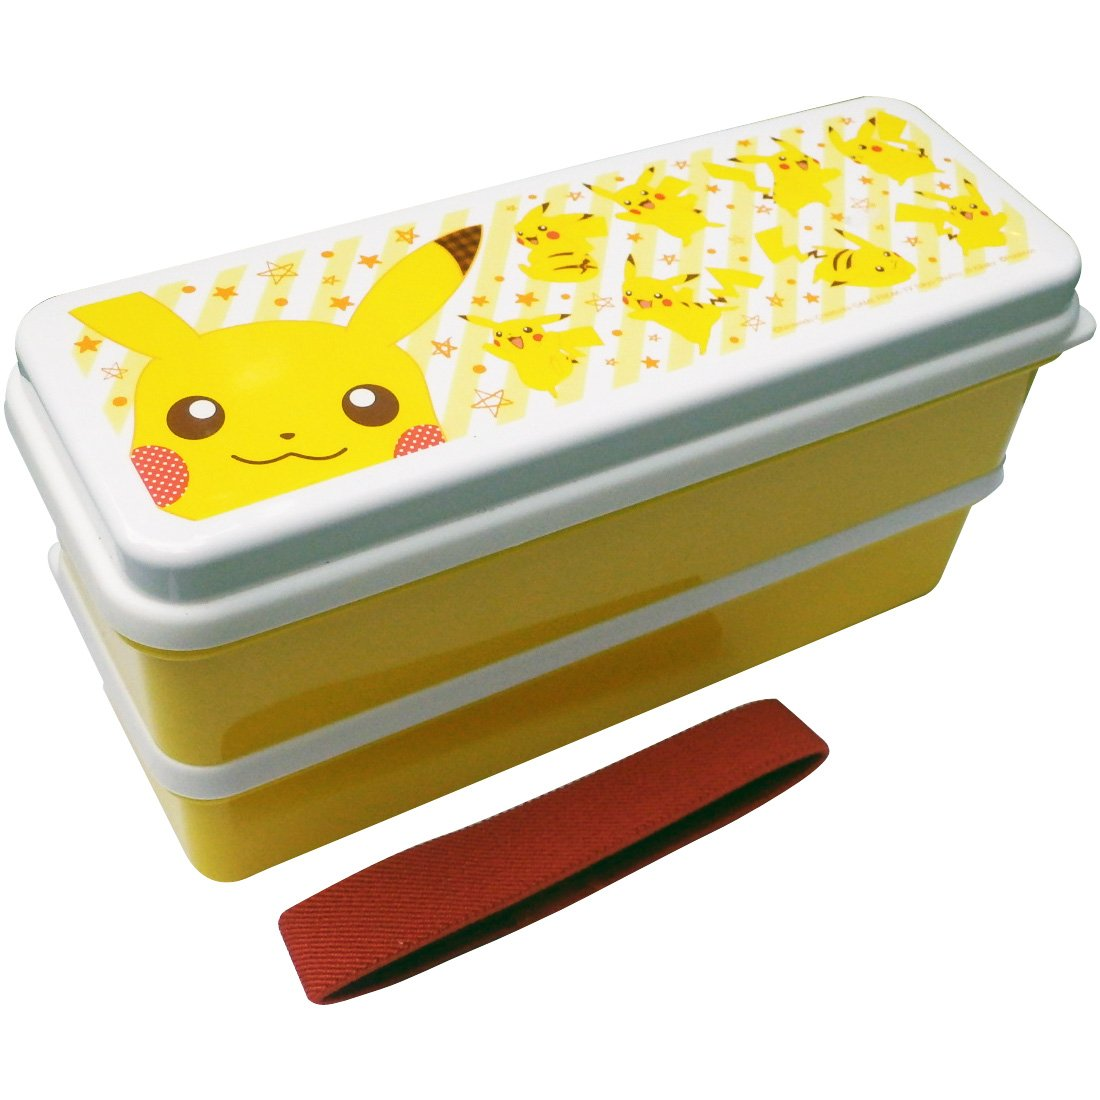 Pokemon silicon Shirubuta two-stage lunch box 630ml Pikachu full PMLC180 by Small Planet by Small Planet